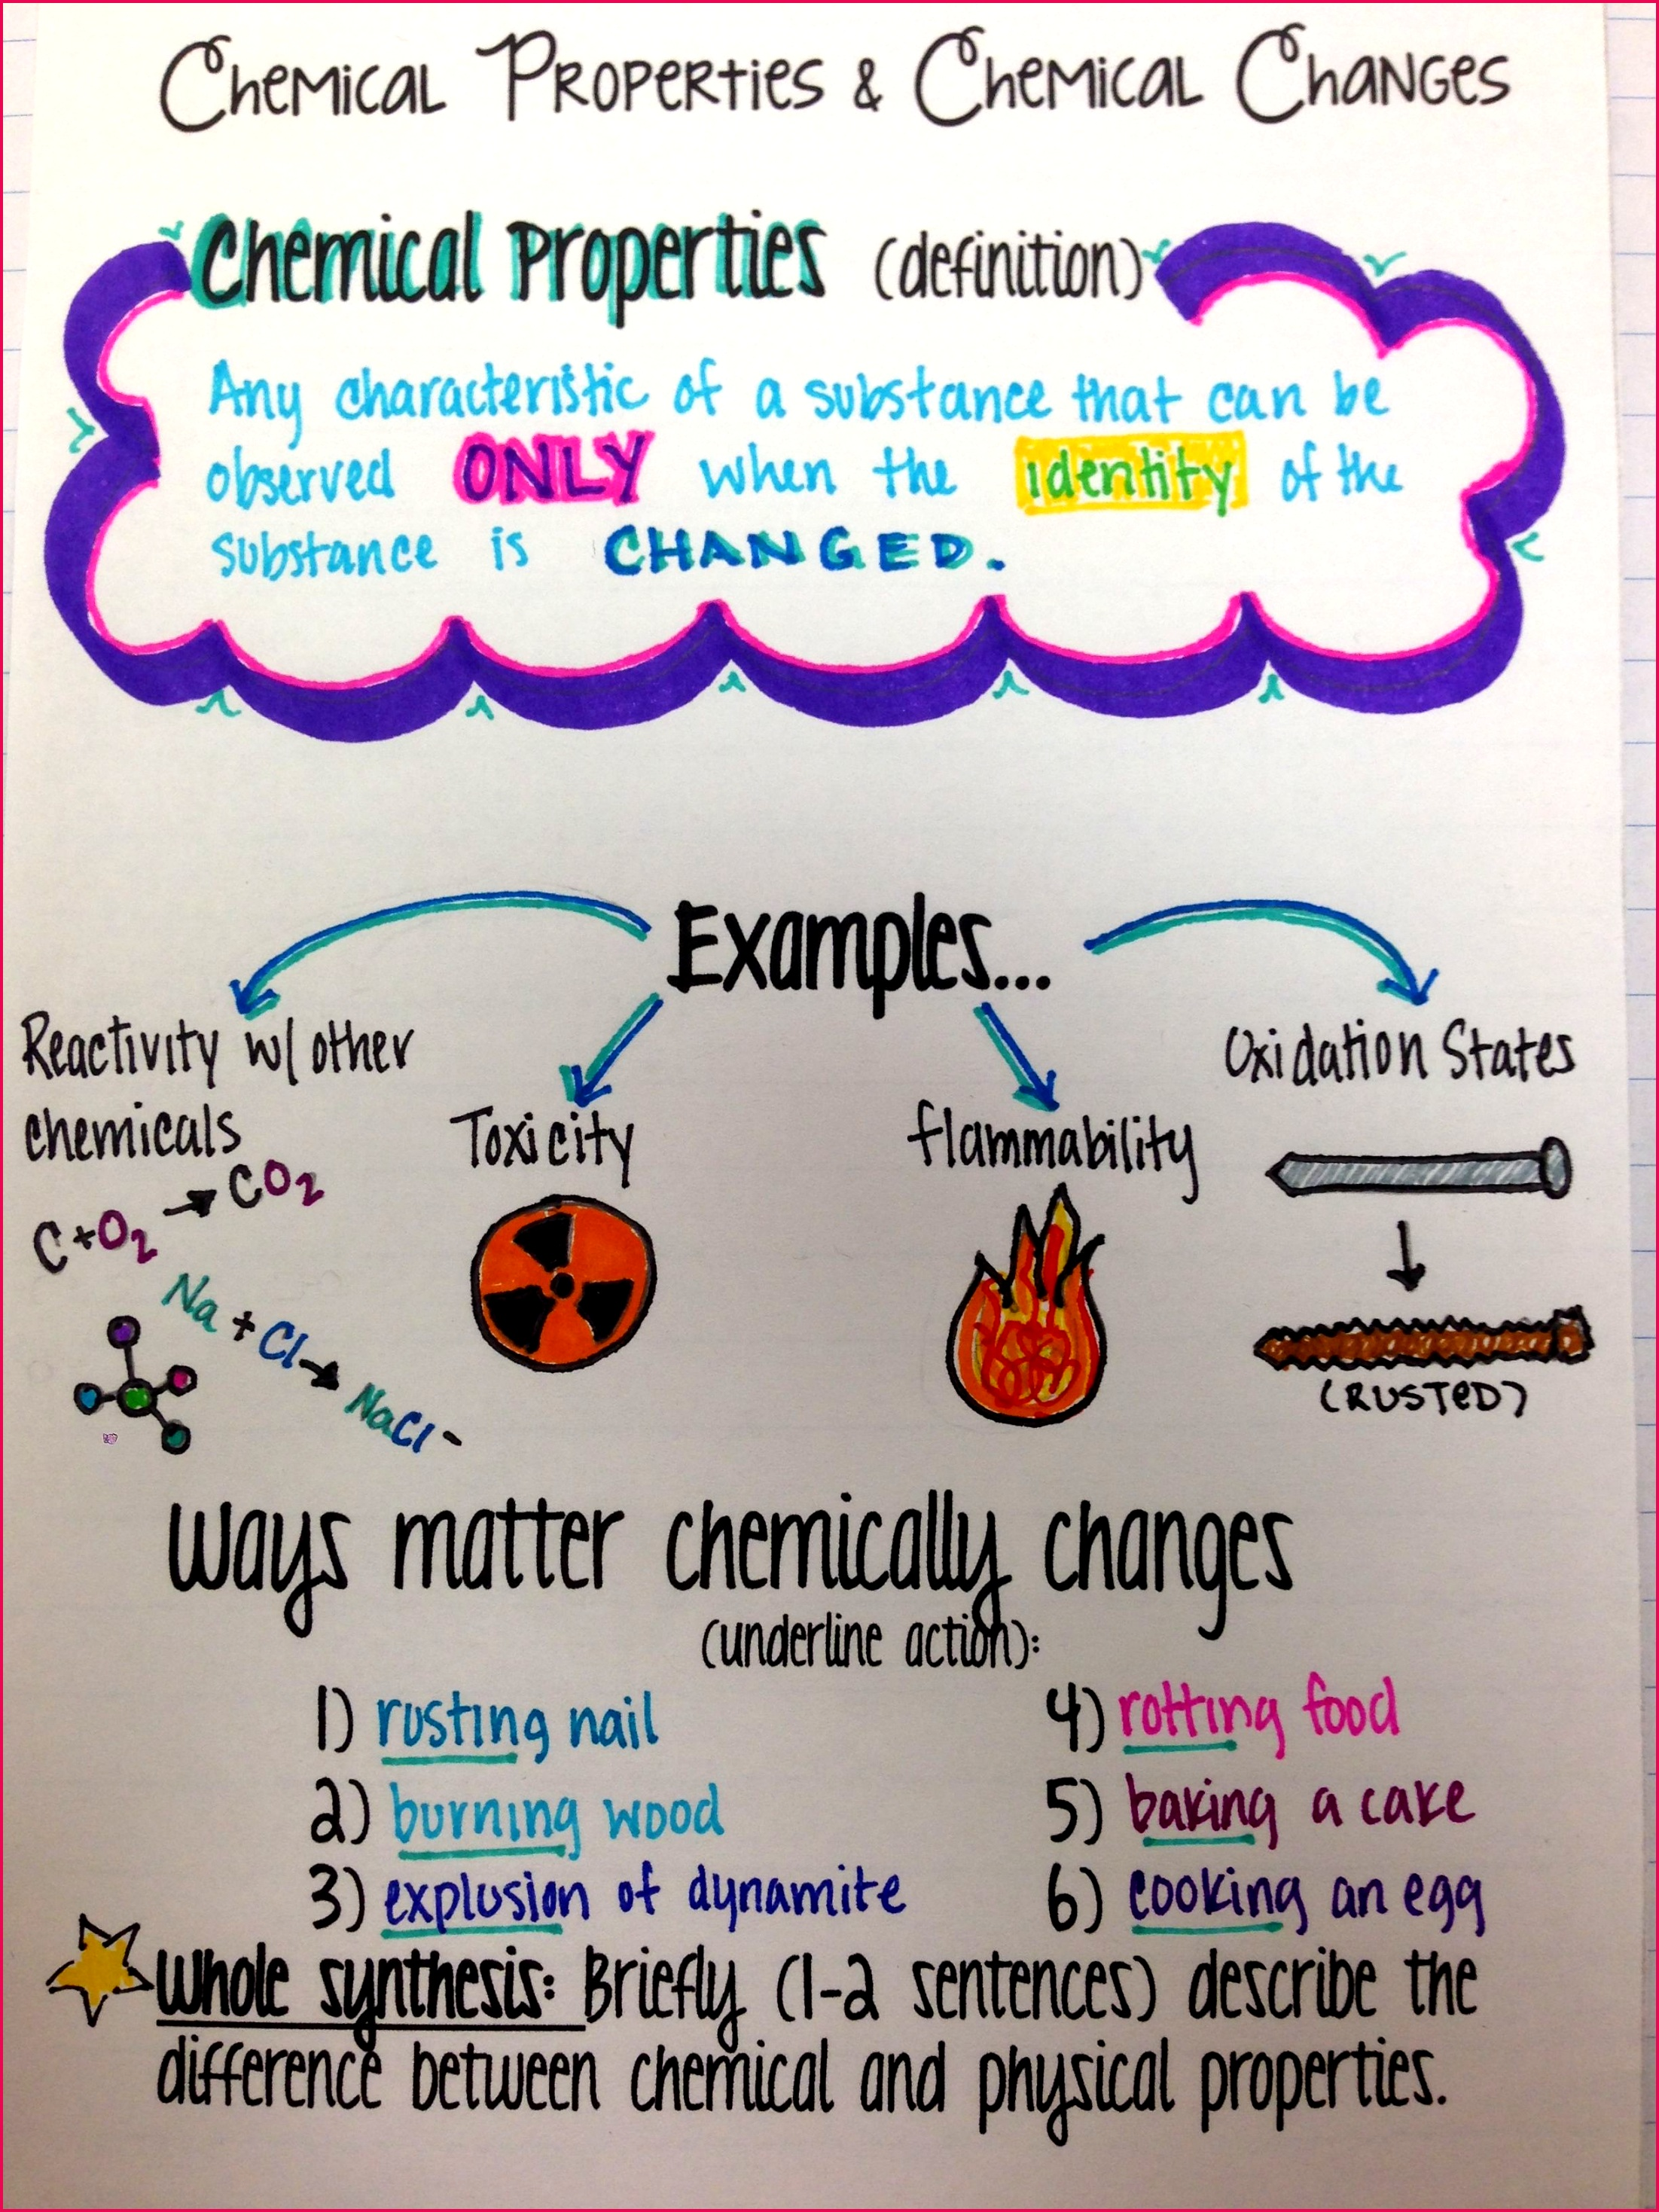 Chemical properties & changes notes